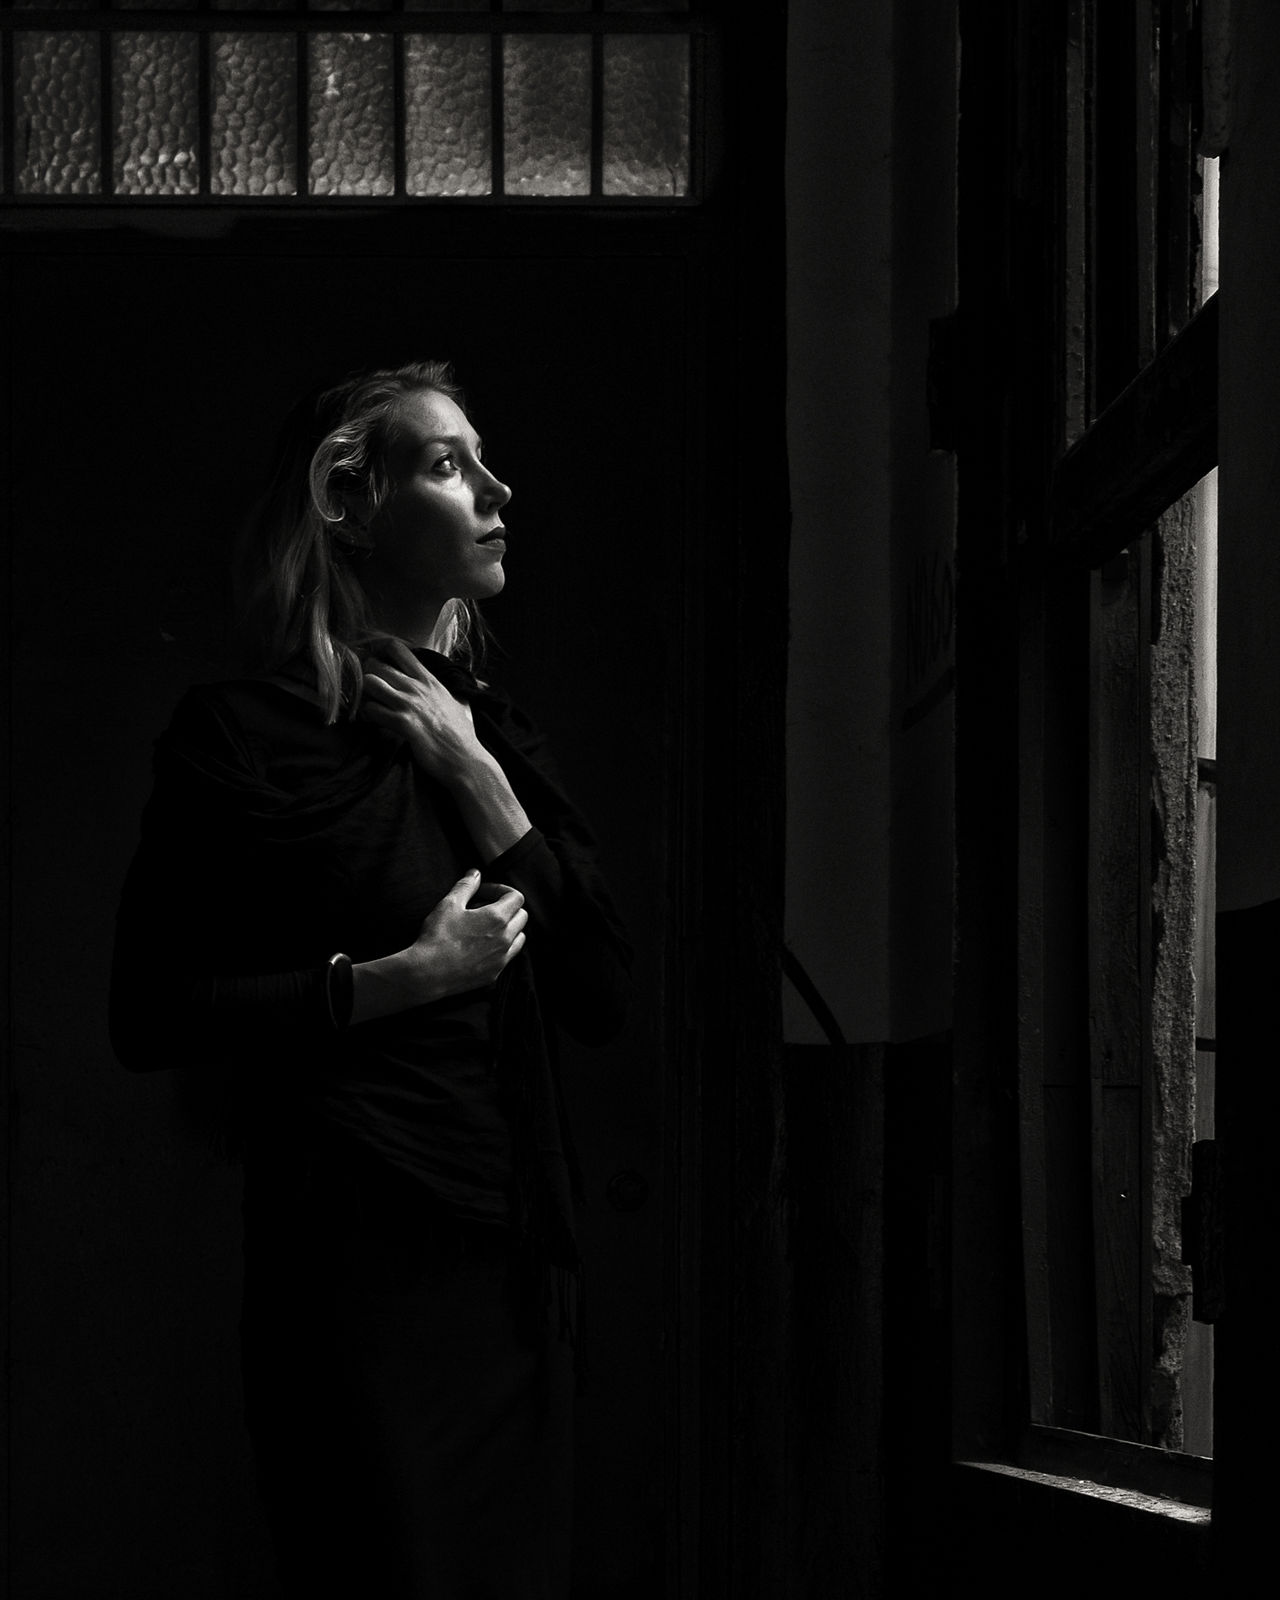 Black & White Black And White Blackandwhite Blackandwhite Photography Contemplation Dark Day Human Hand Indoors  Istanbul Lifestyles Light And Shadow One Person One Woman Only Only Women People Portrait Portrait Of A Woman Real People Women Young Adult